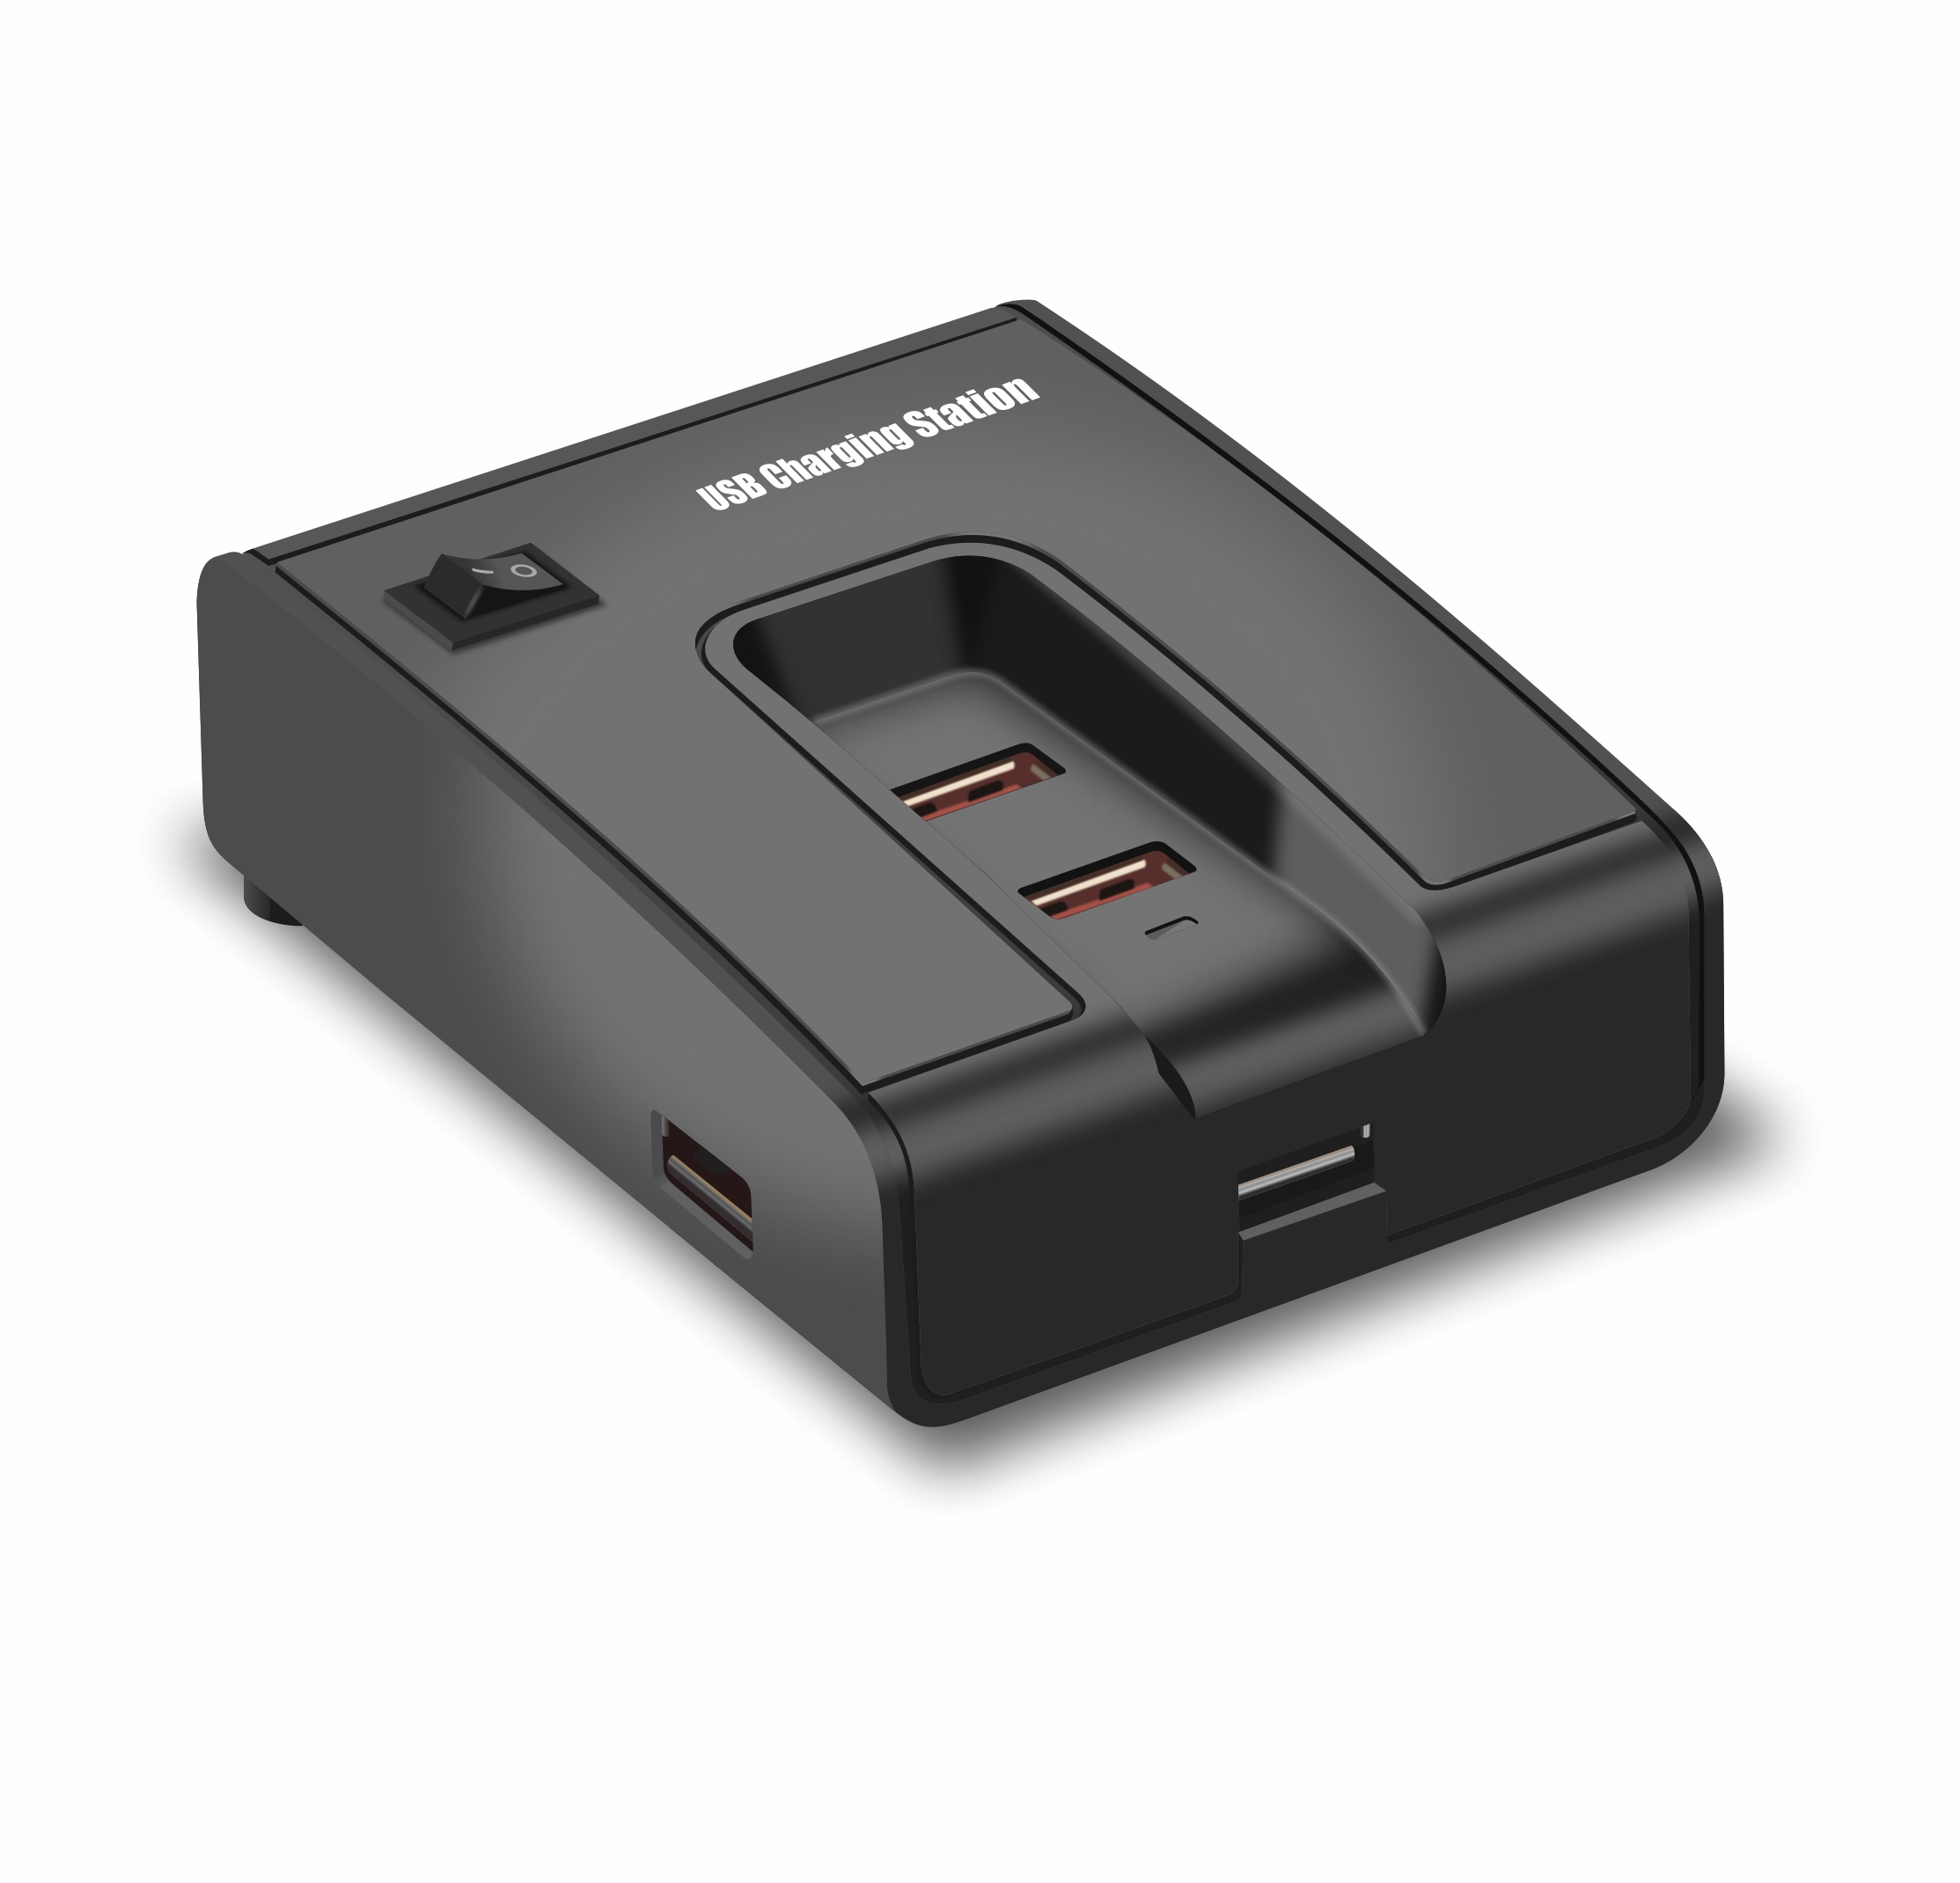 Five Port USB Charging Station A Perfect Solution For